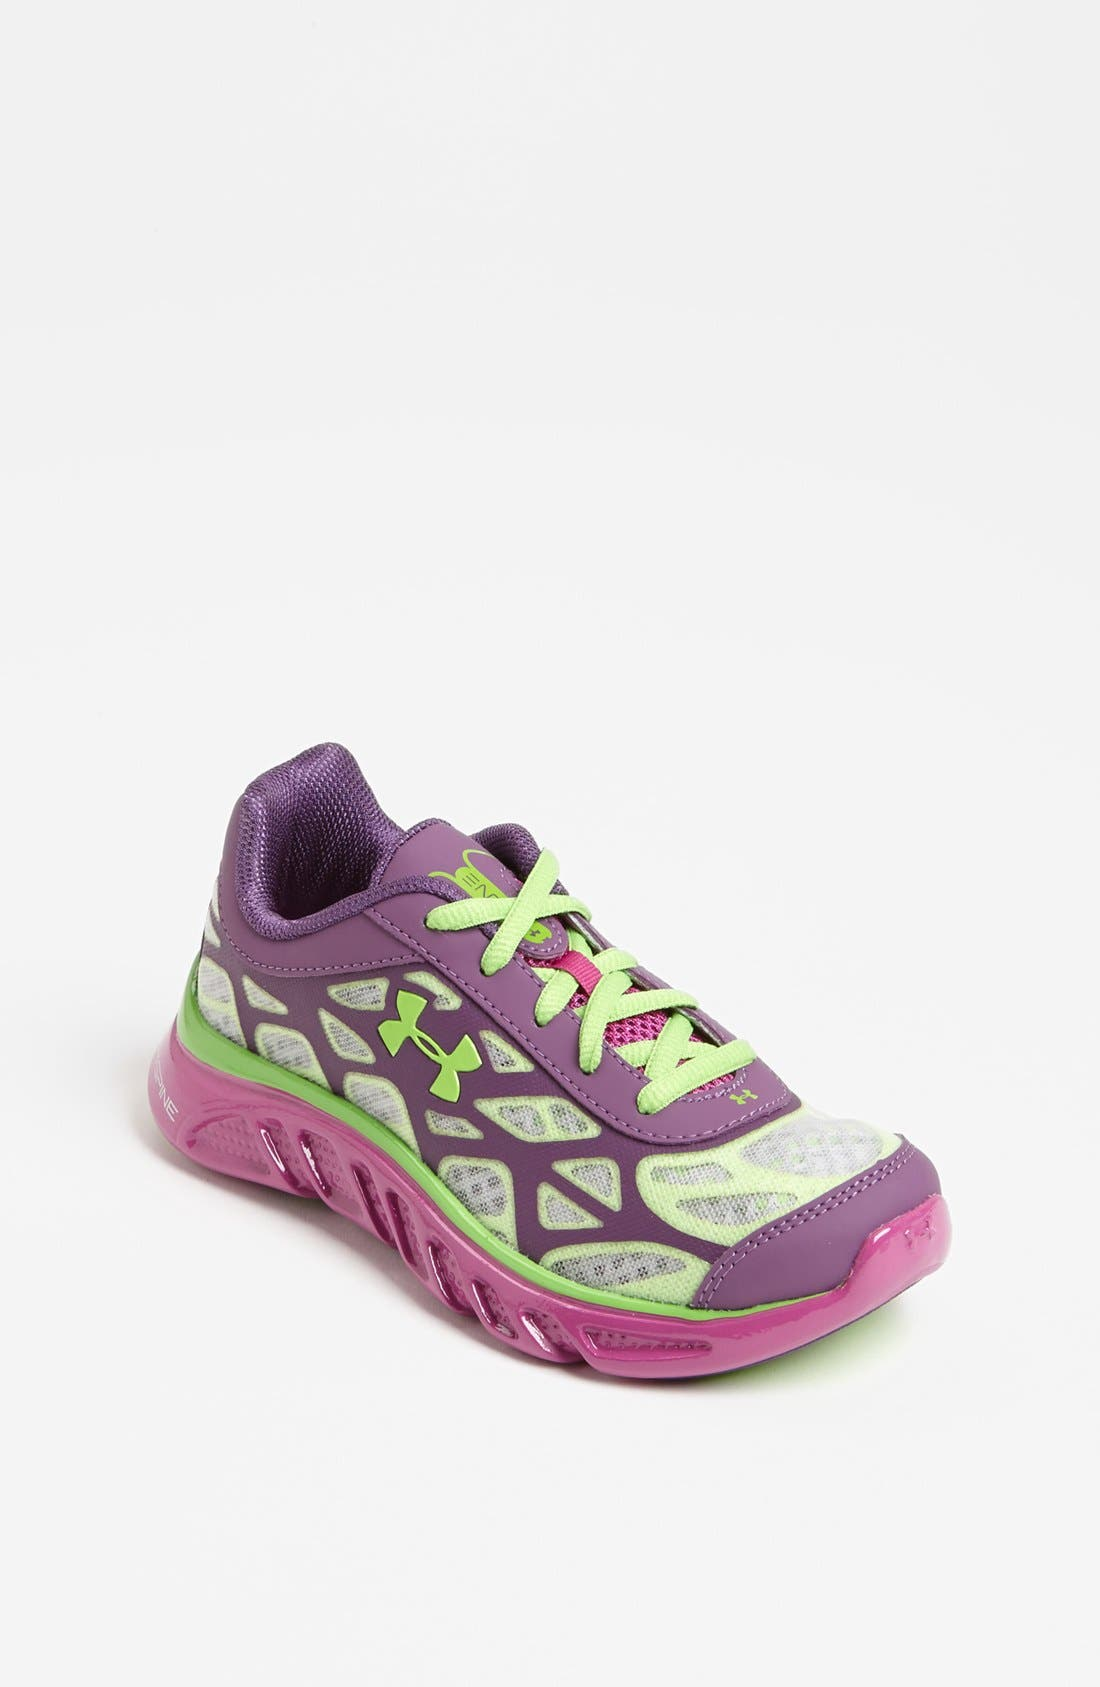 Main Image - Under Armour 'Spine™ Vice' Athletic Shoe (Toddler, Little Kid & Big Kid)